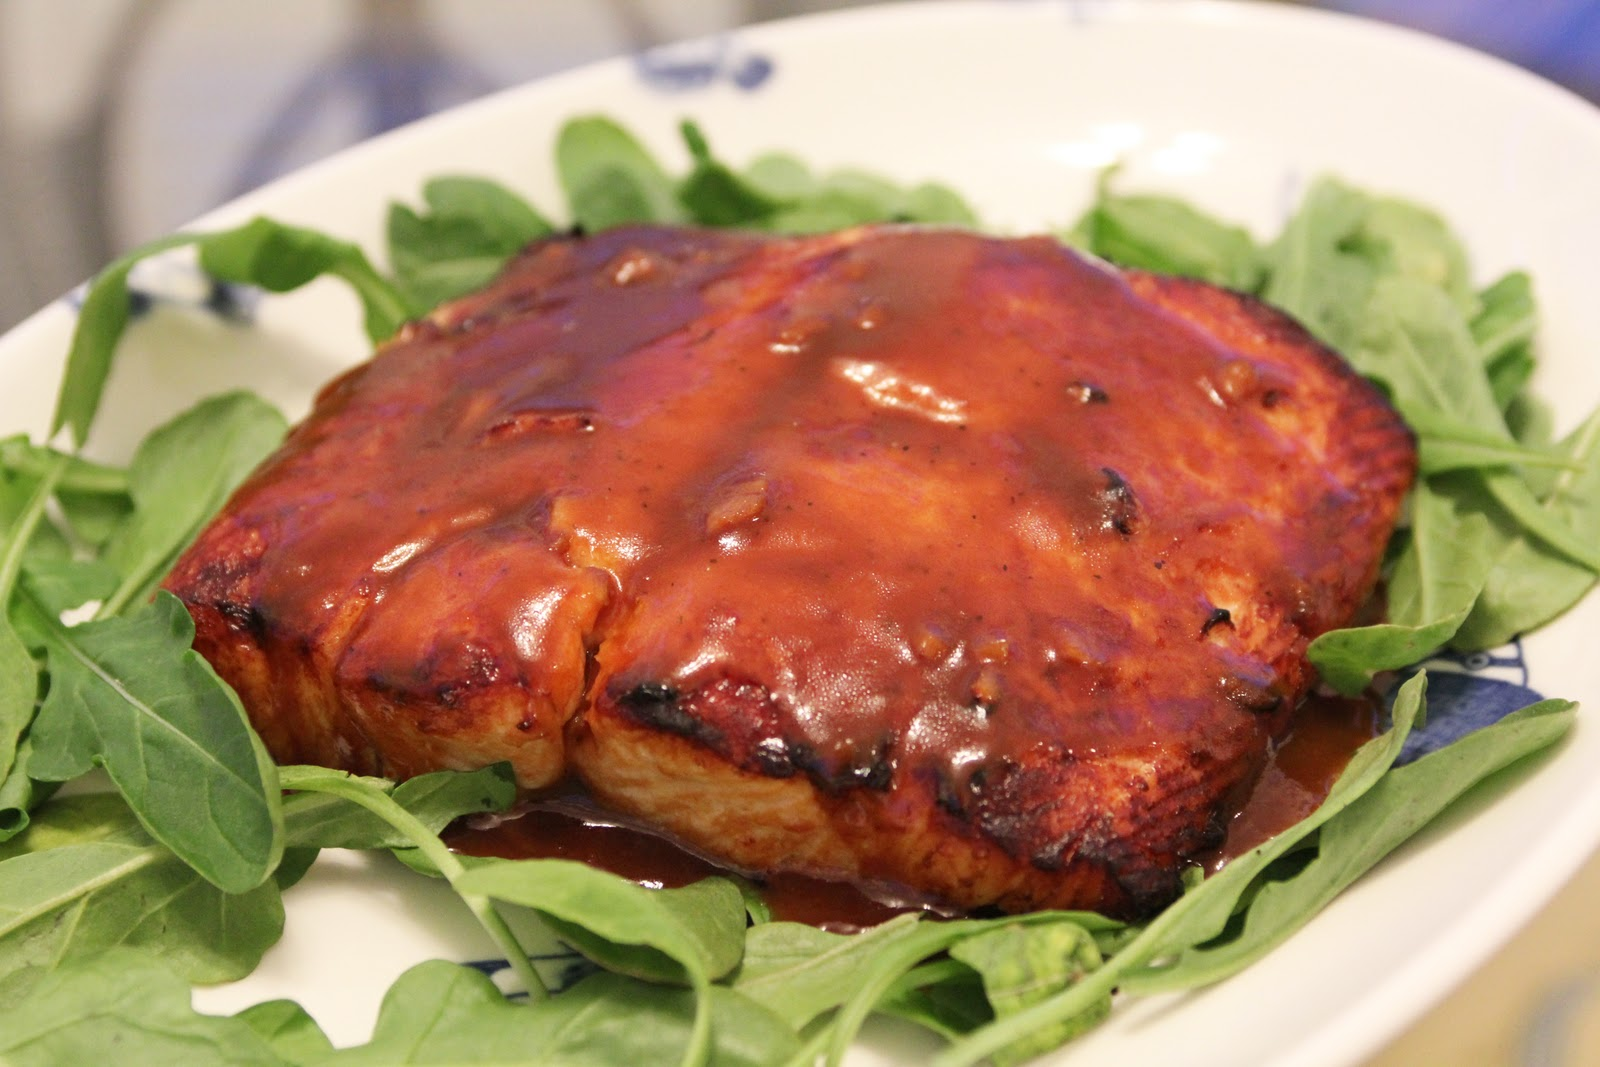 Devouring DC: Orange-Soy Glazed Salmon